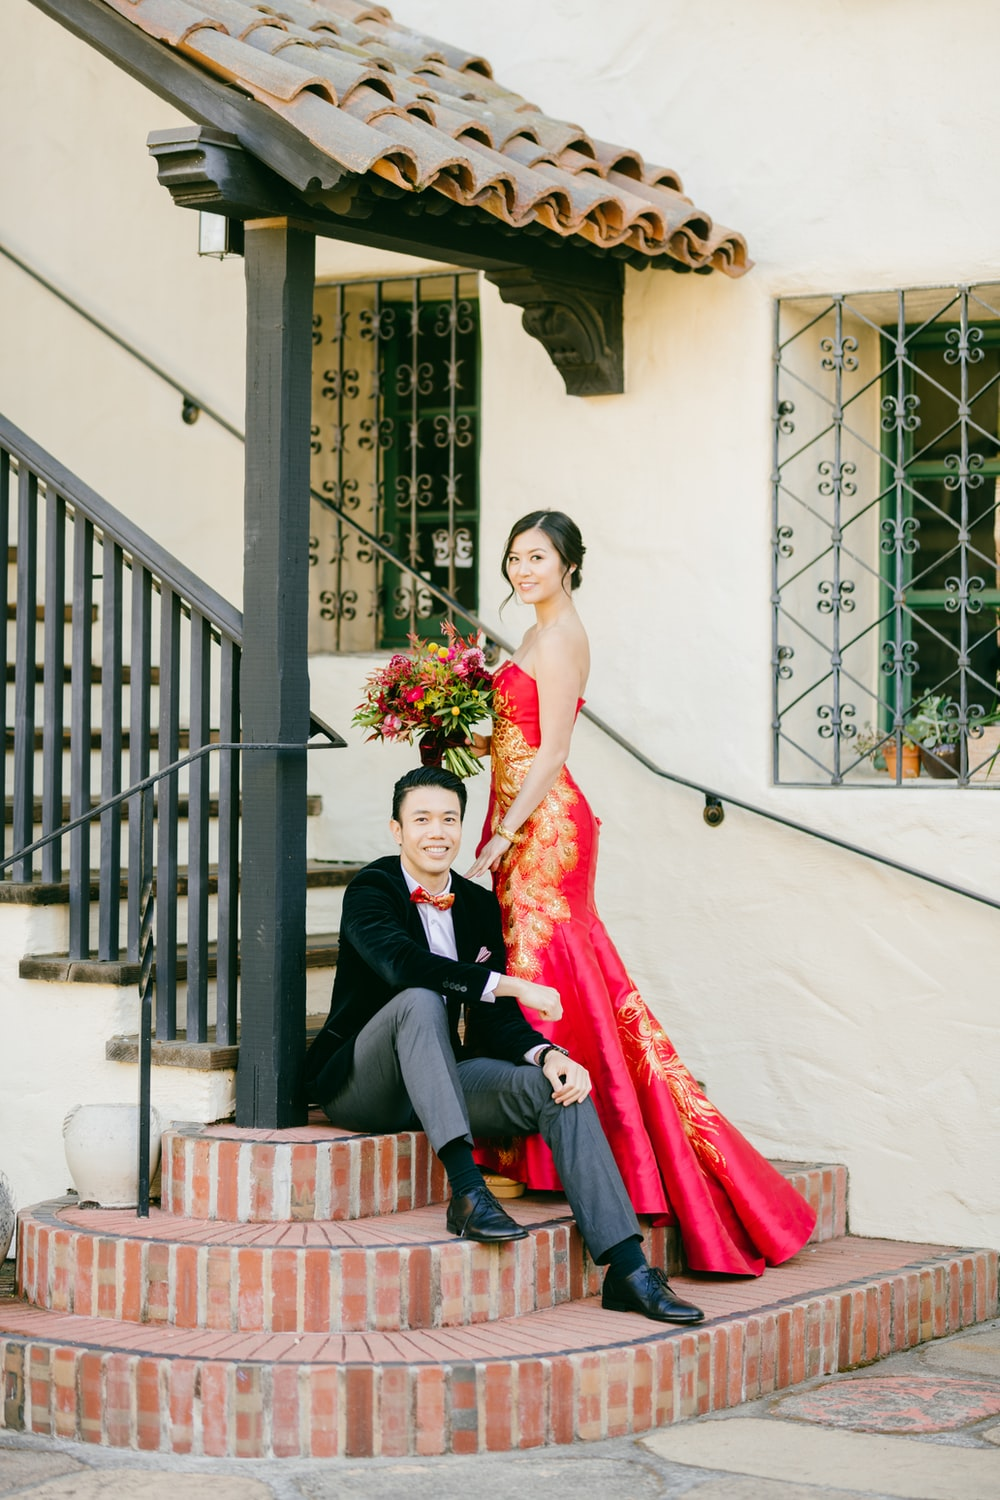 man in black suit jacket and woman in red dress